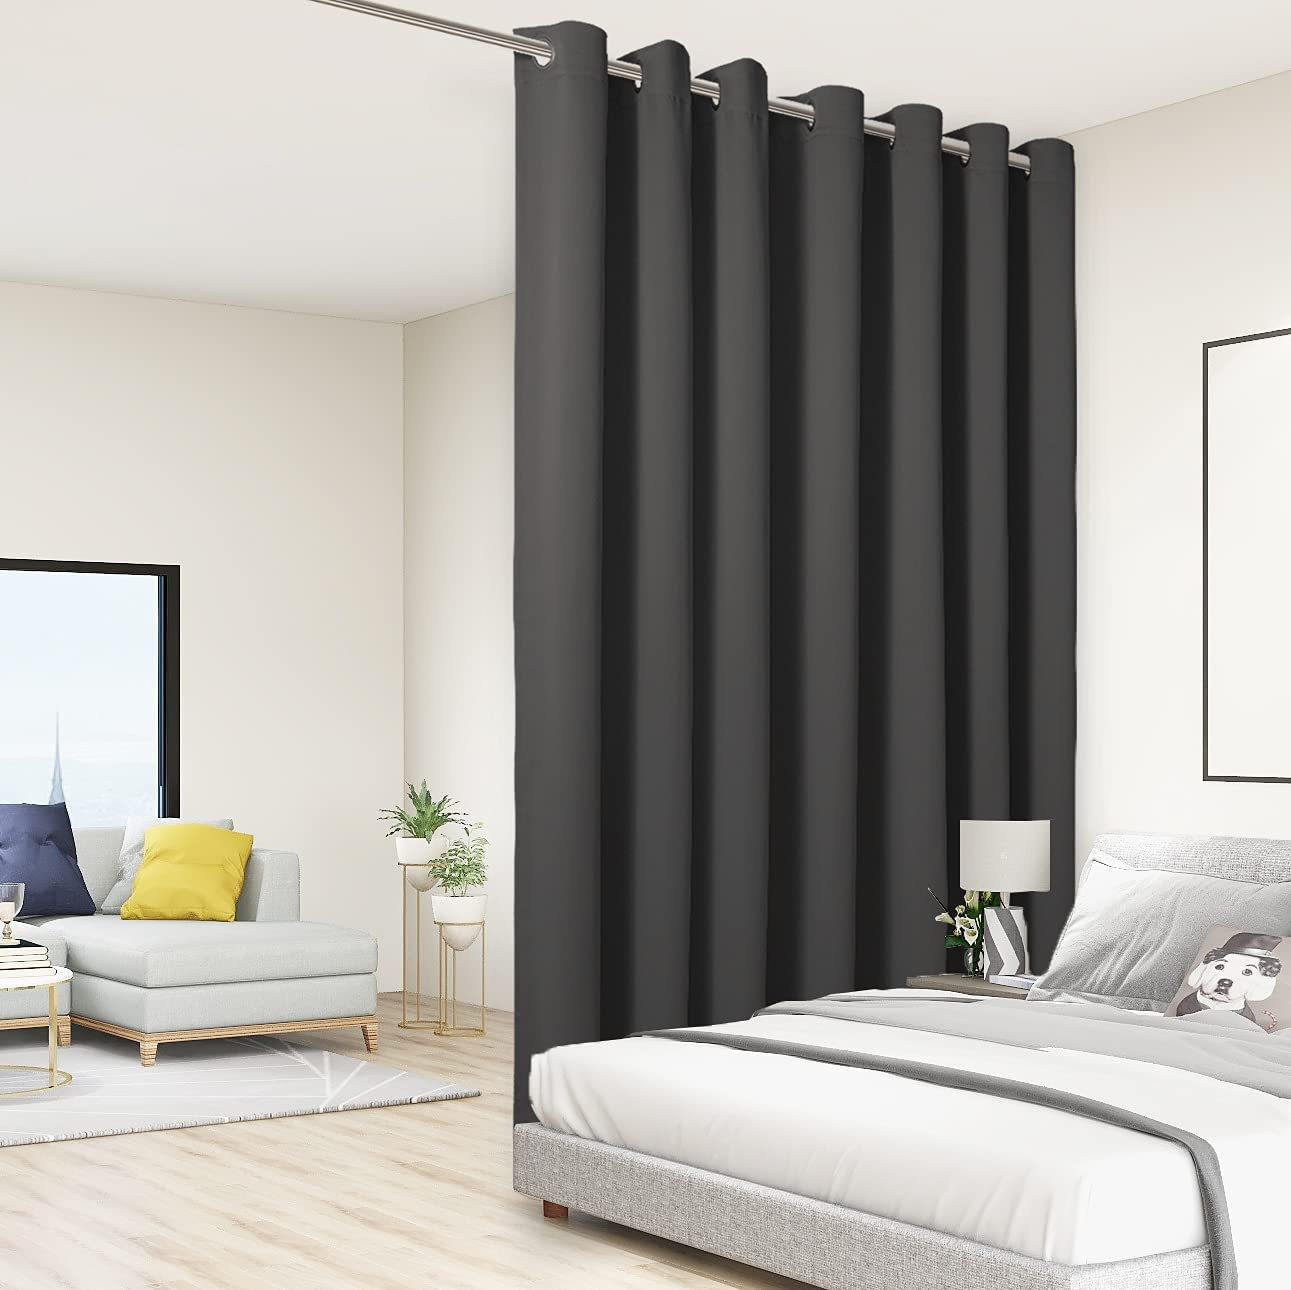 BONZER Room Divider Curtain Total Privacy Wall Grommet Thermal Insulated  Soundproof Extra Wide Blackout Curtains for Bedroom Living Room, 20ft Wide x  ...